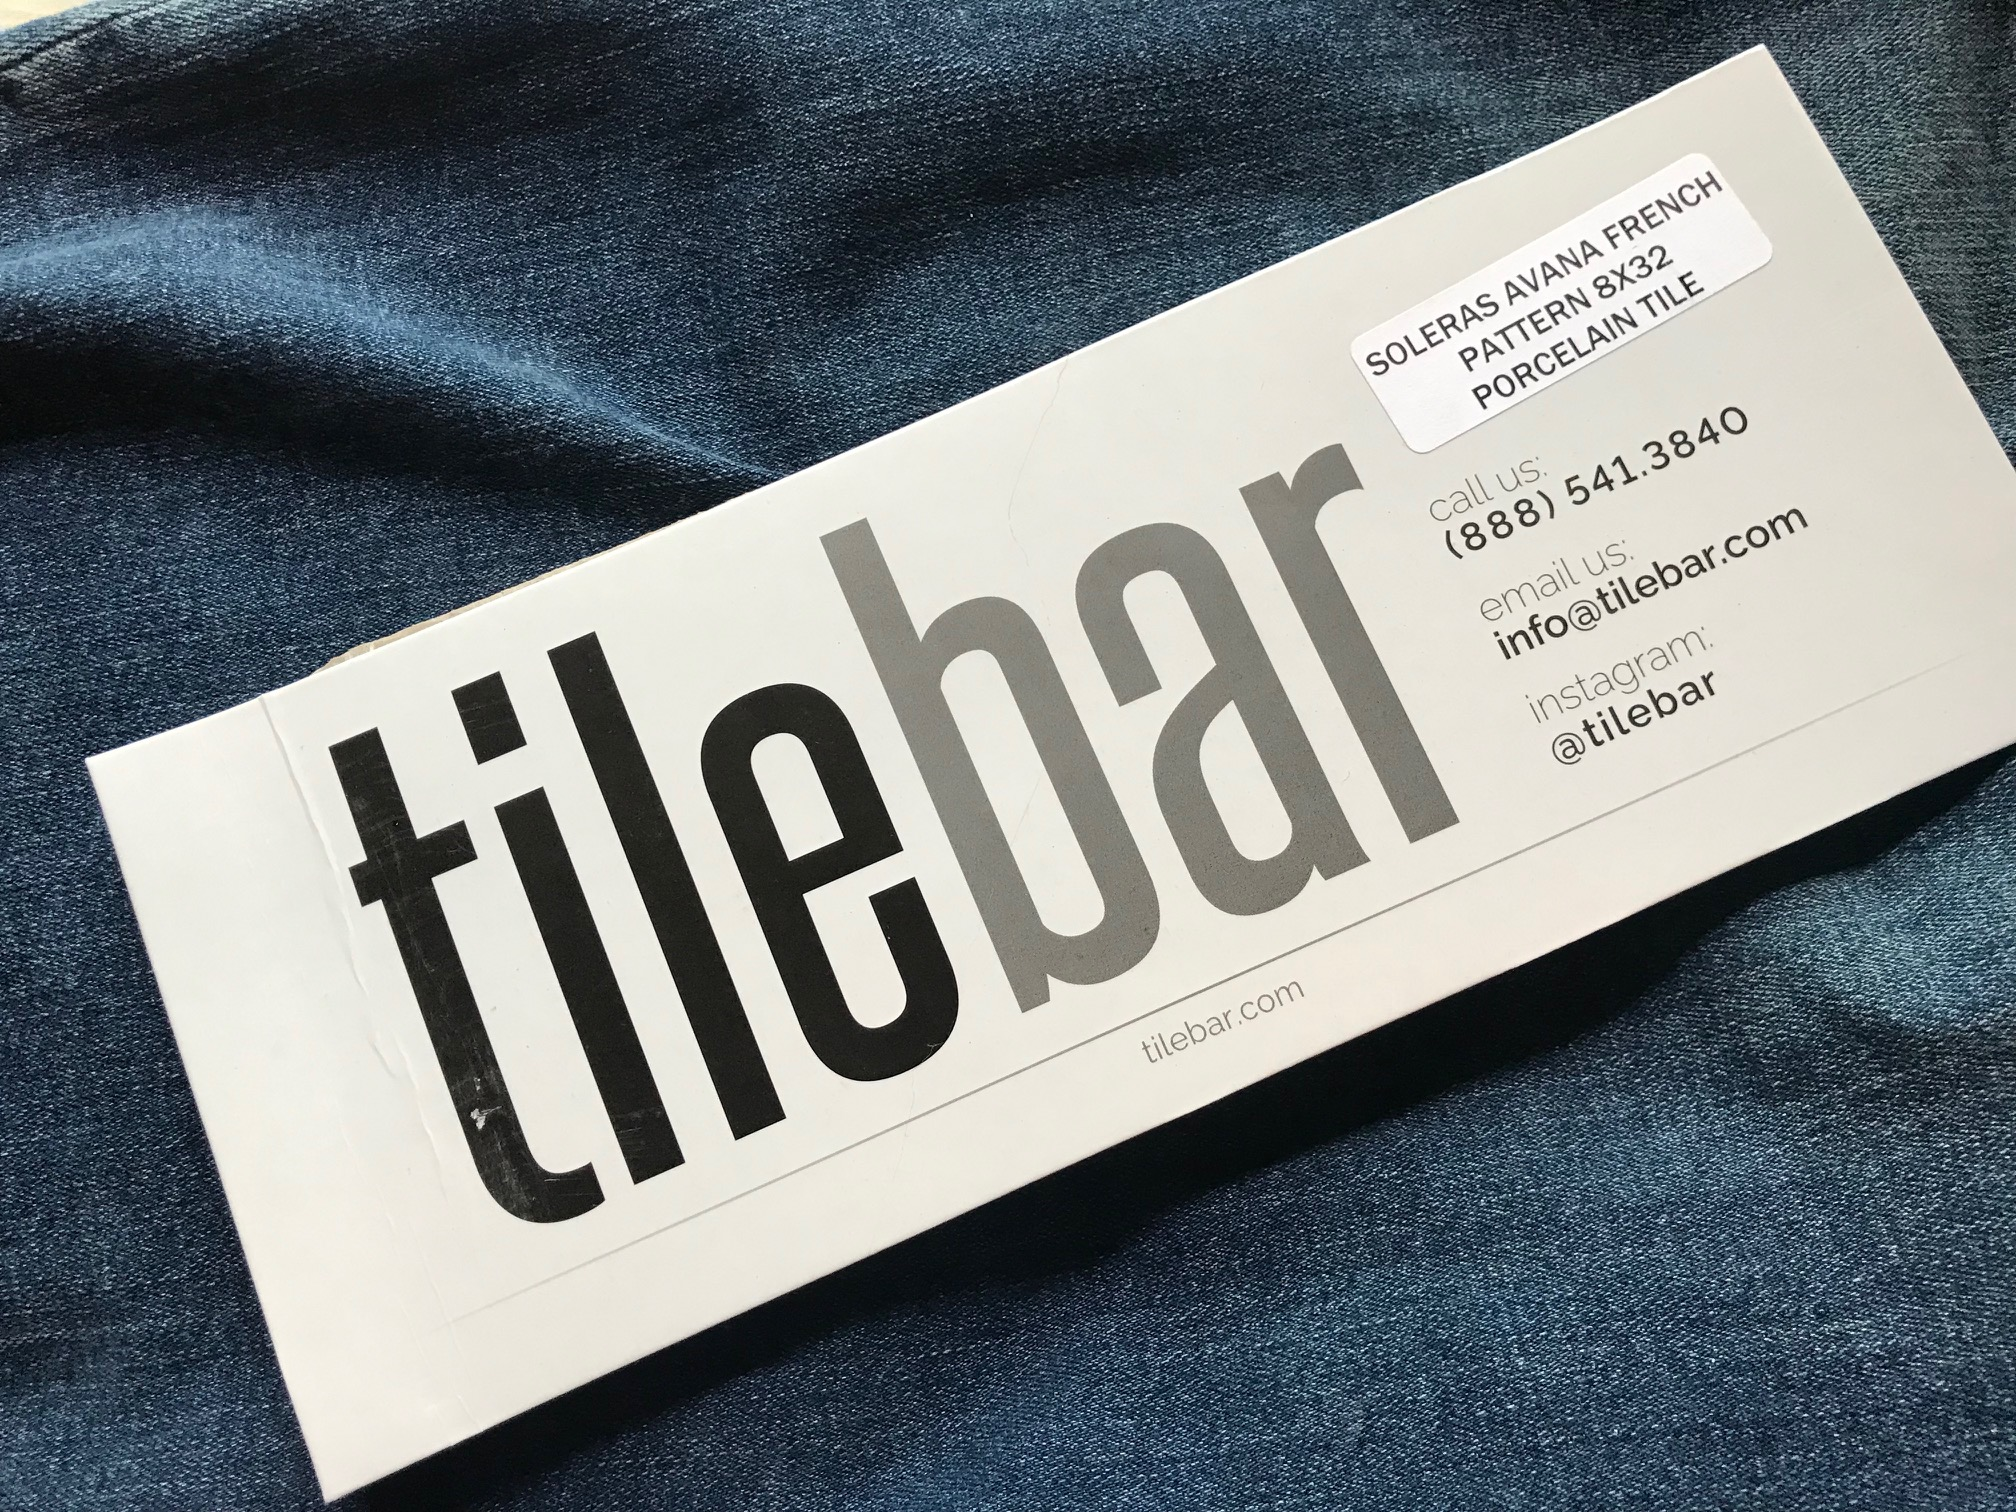 Soleras Avana French porcelain tile from tilebar: 284 ppm Lead (90 ppm is unsafe for kids' items)